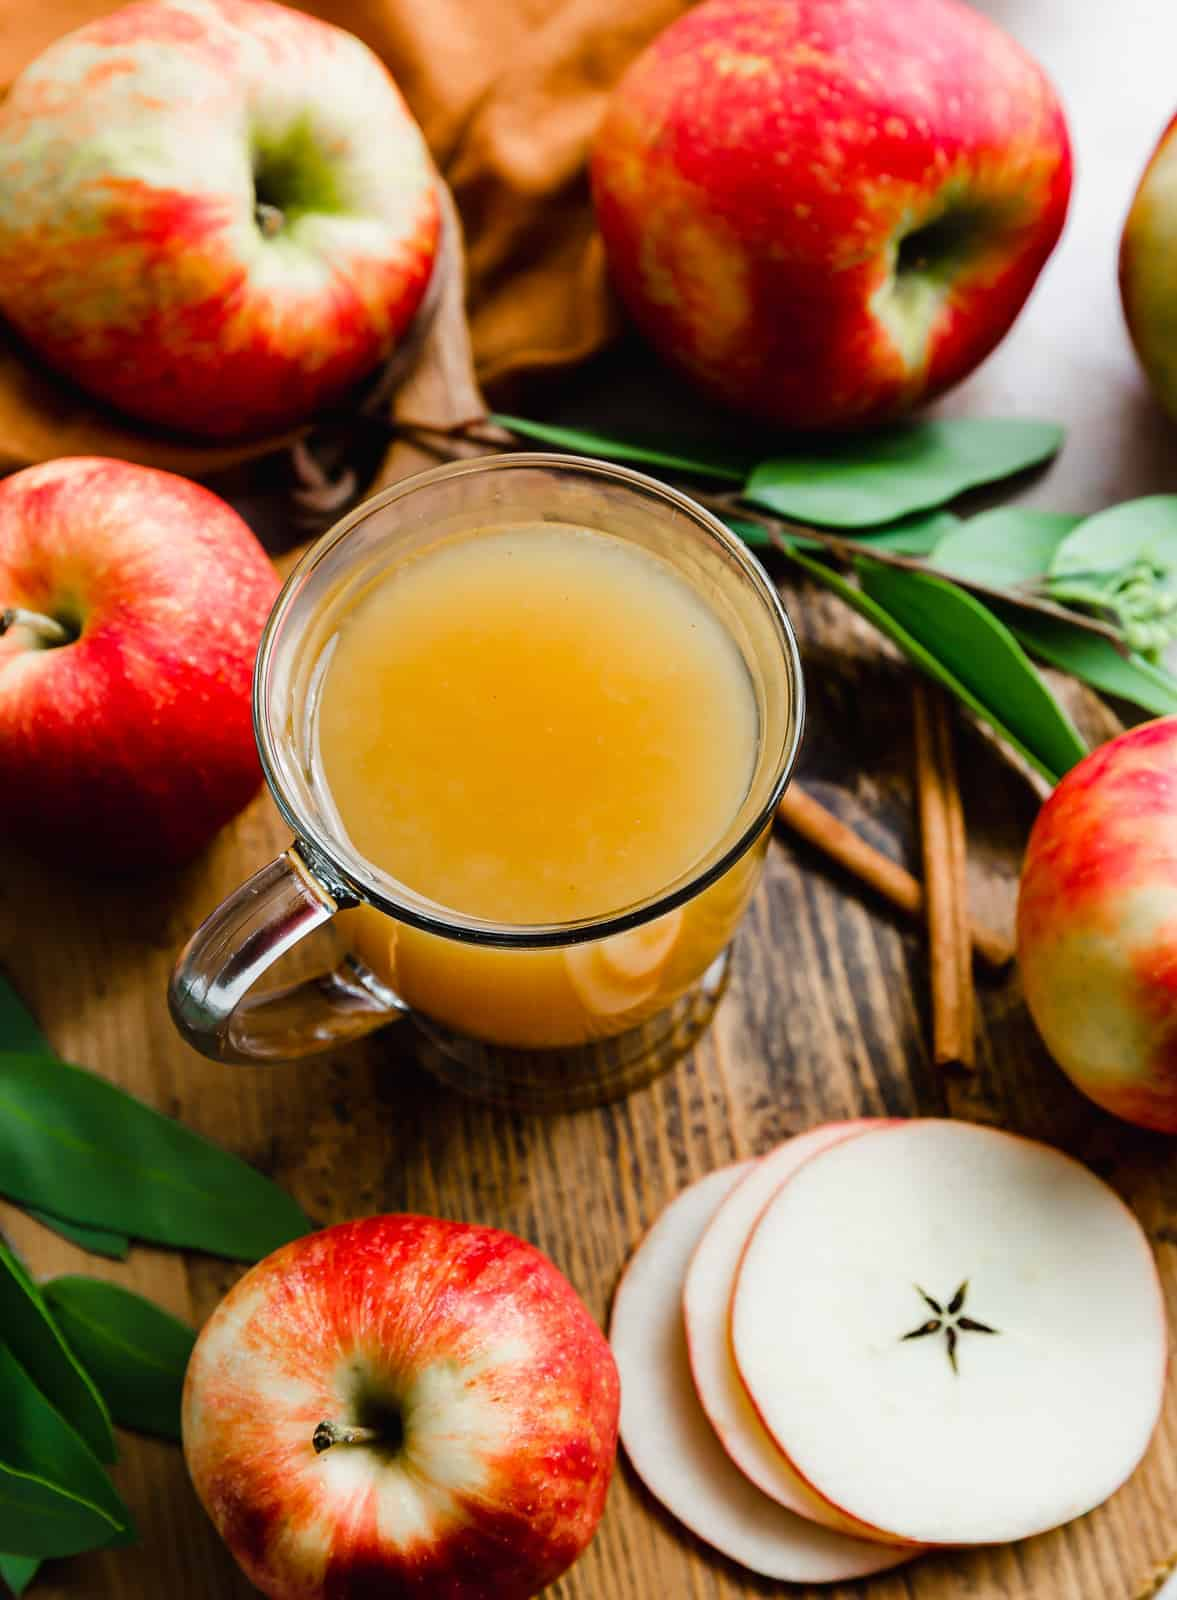 A cup of wassail surrounded by red apples.